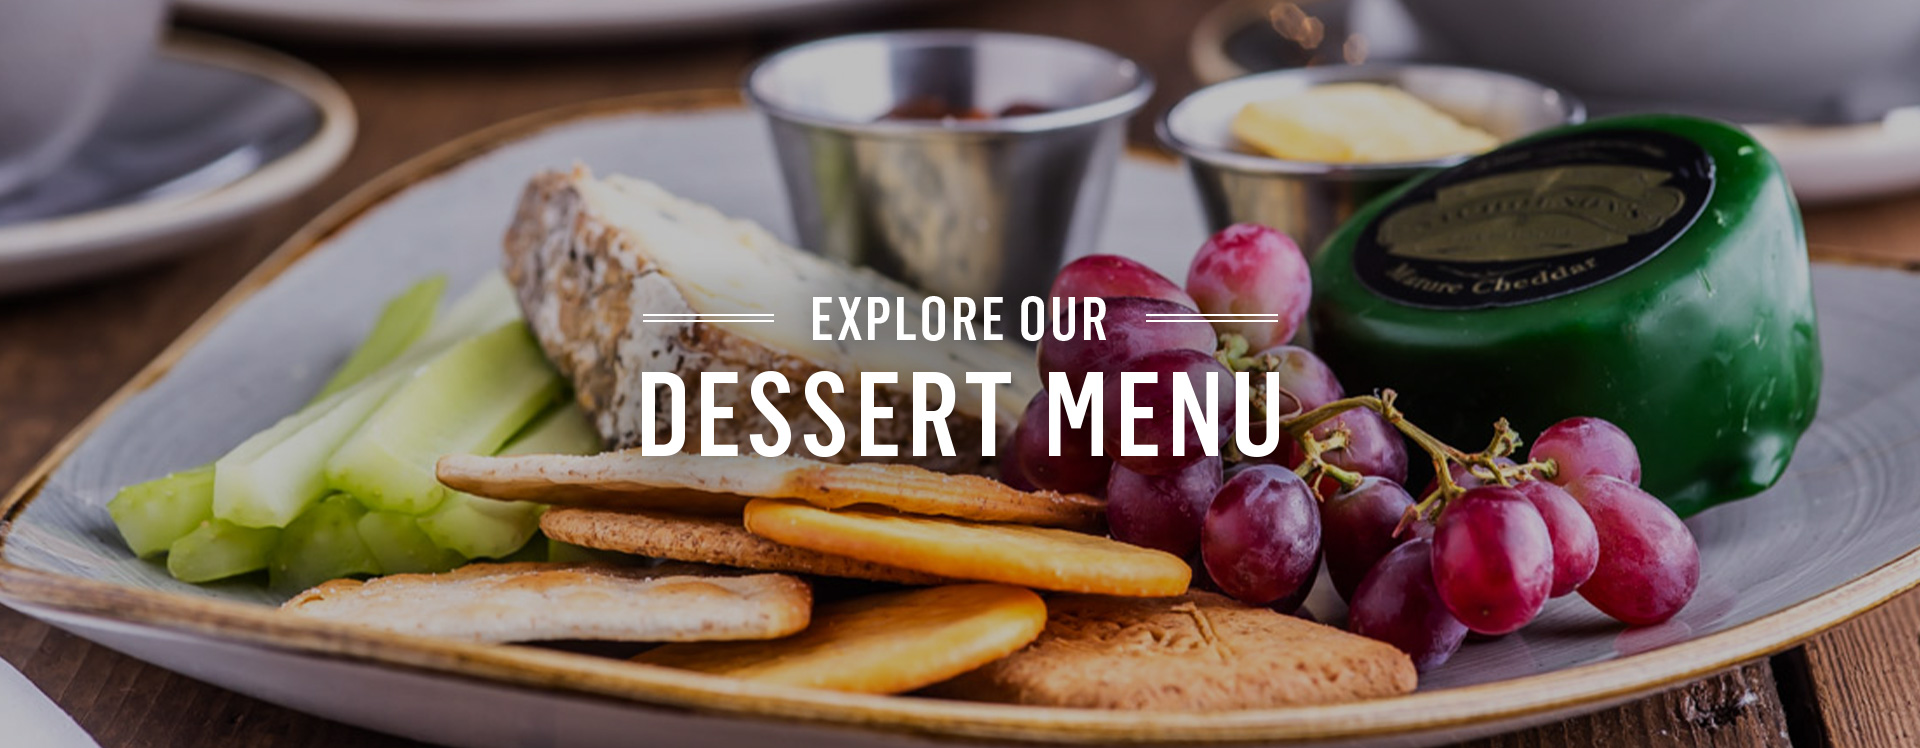 Dessert menu at The White Lion - Book a table